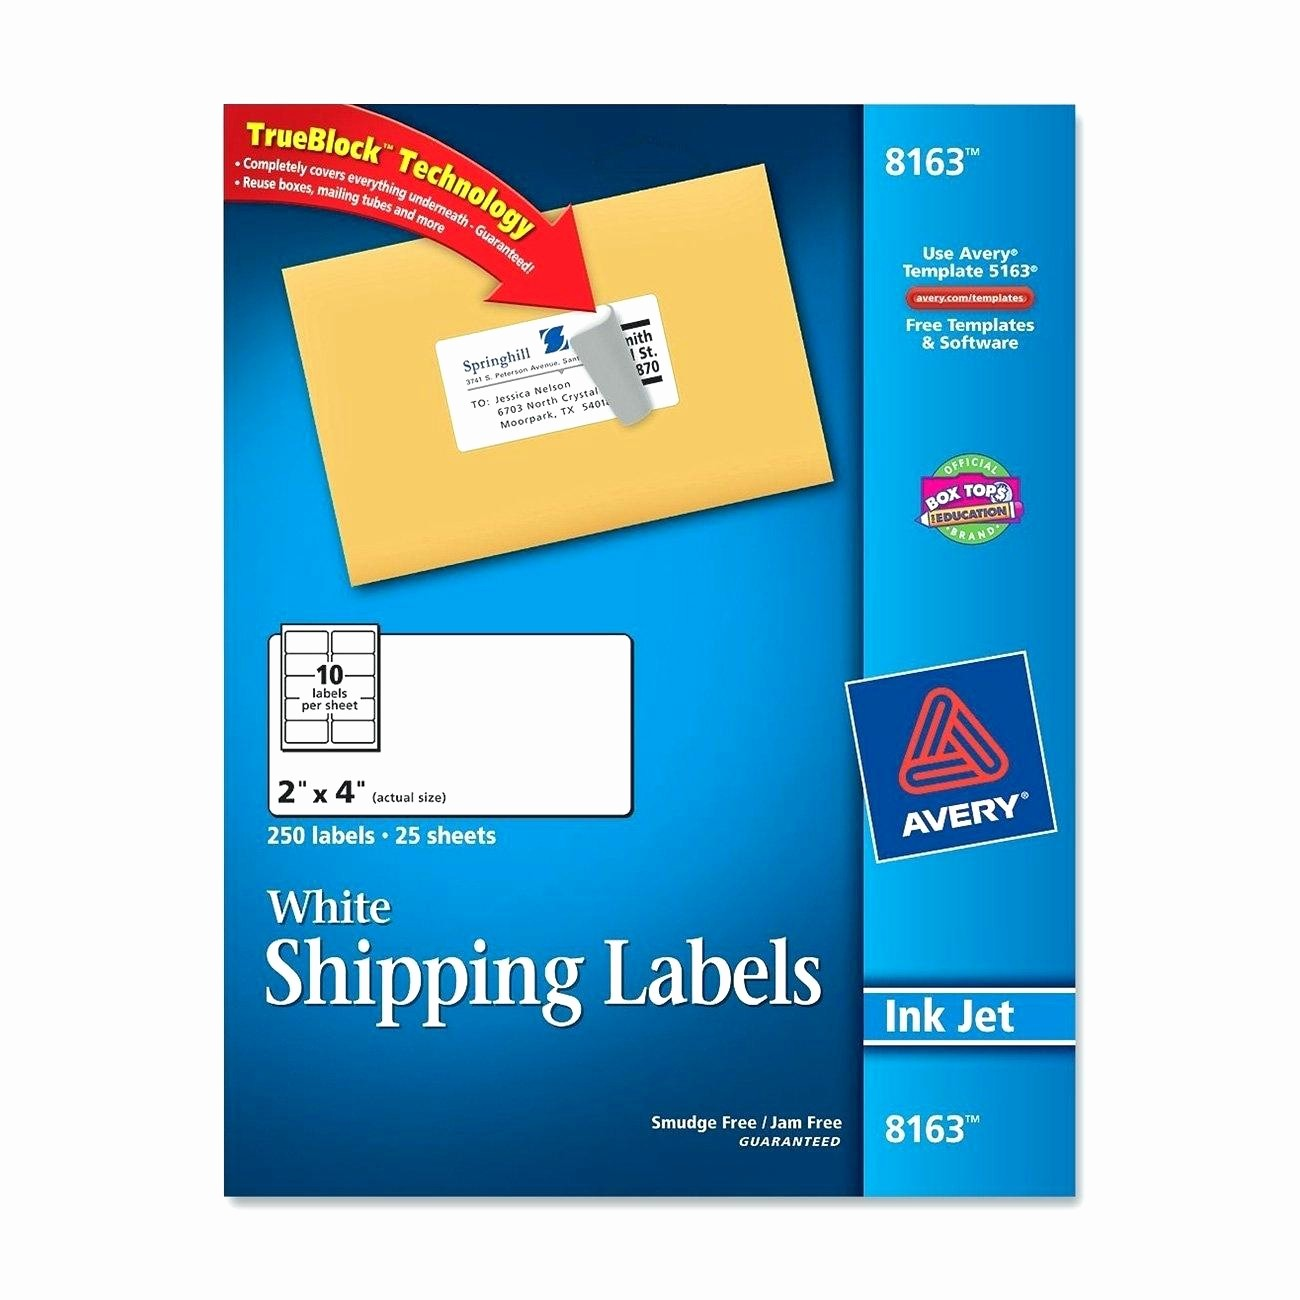 Avery Shipping Label Templates 5164 Awesome Avery Shipping Label Template 5164